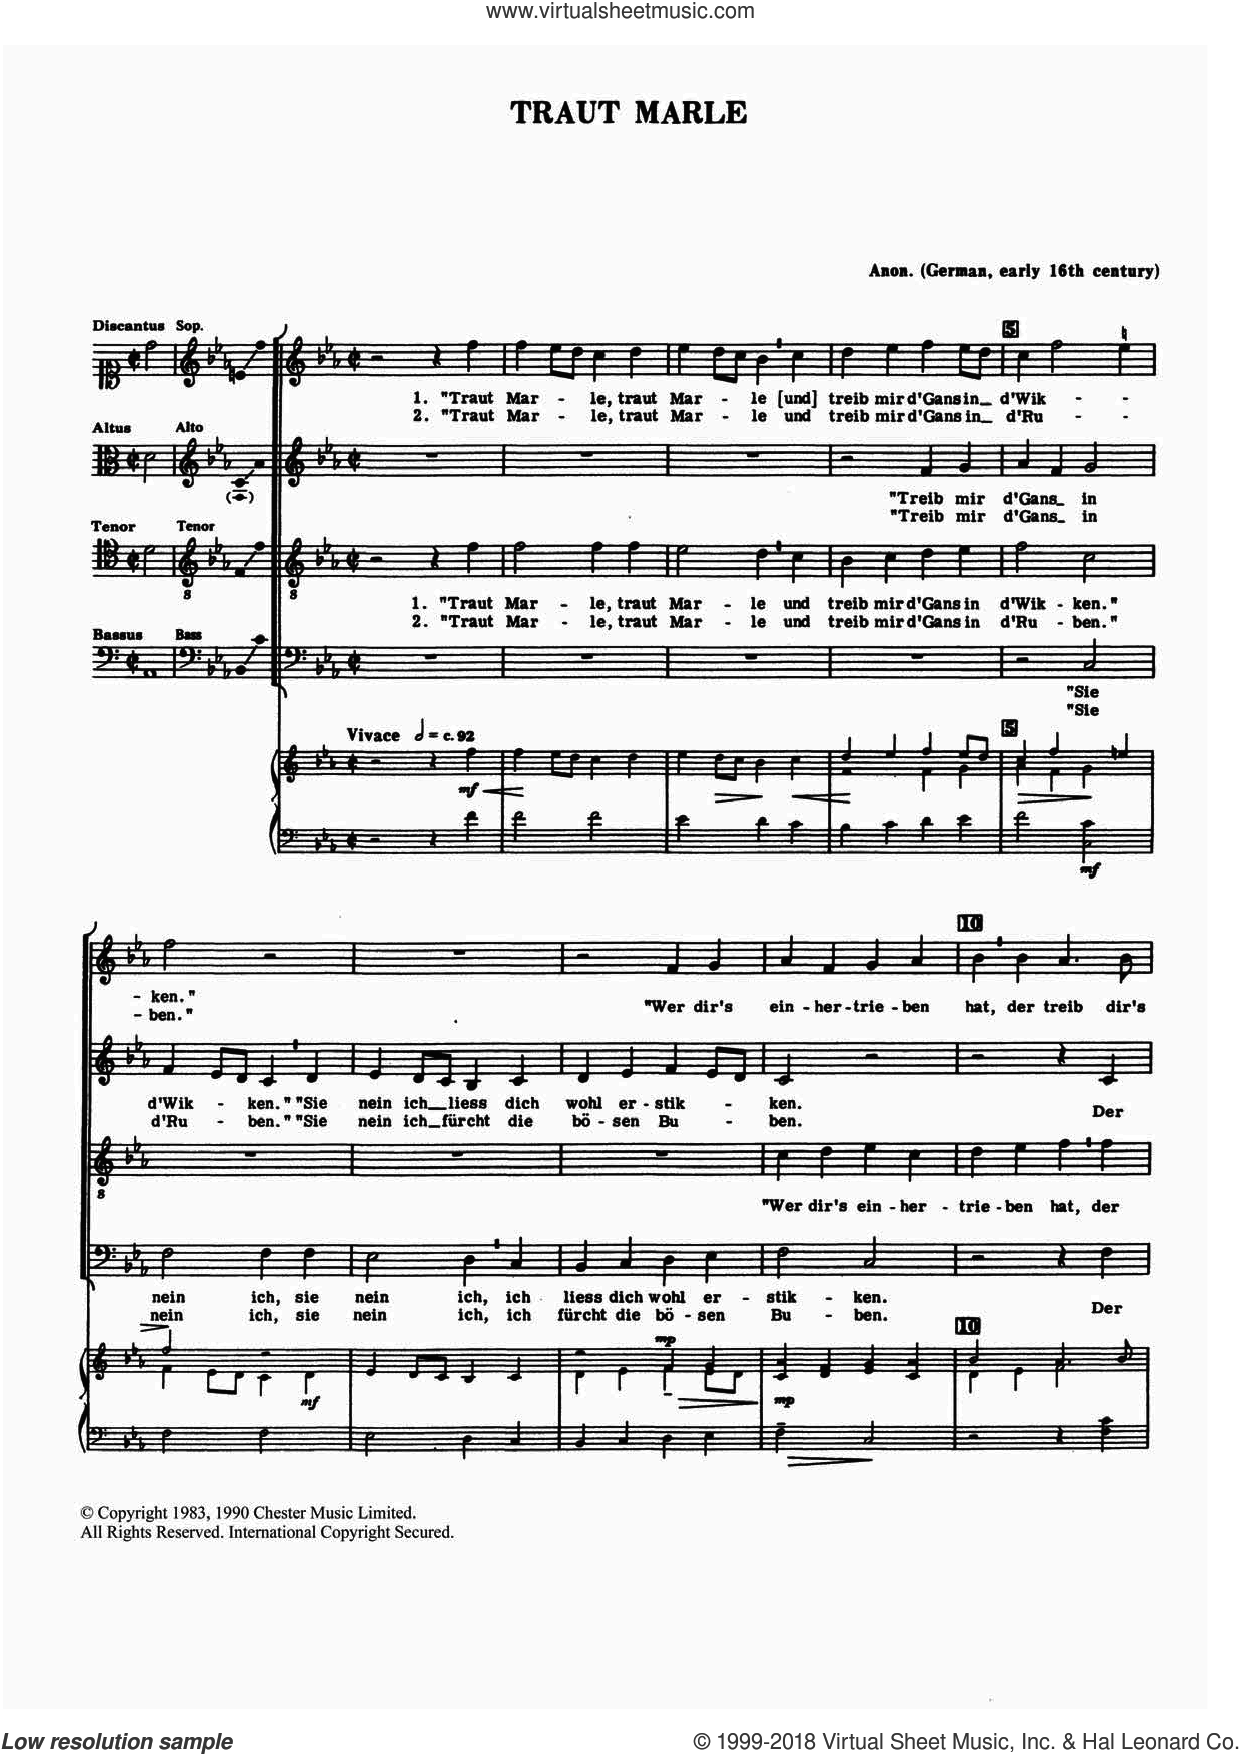 Traut Marle sheet music for choir by Anon, Anthony Petti and Miscellaneous, classical score, intermediate